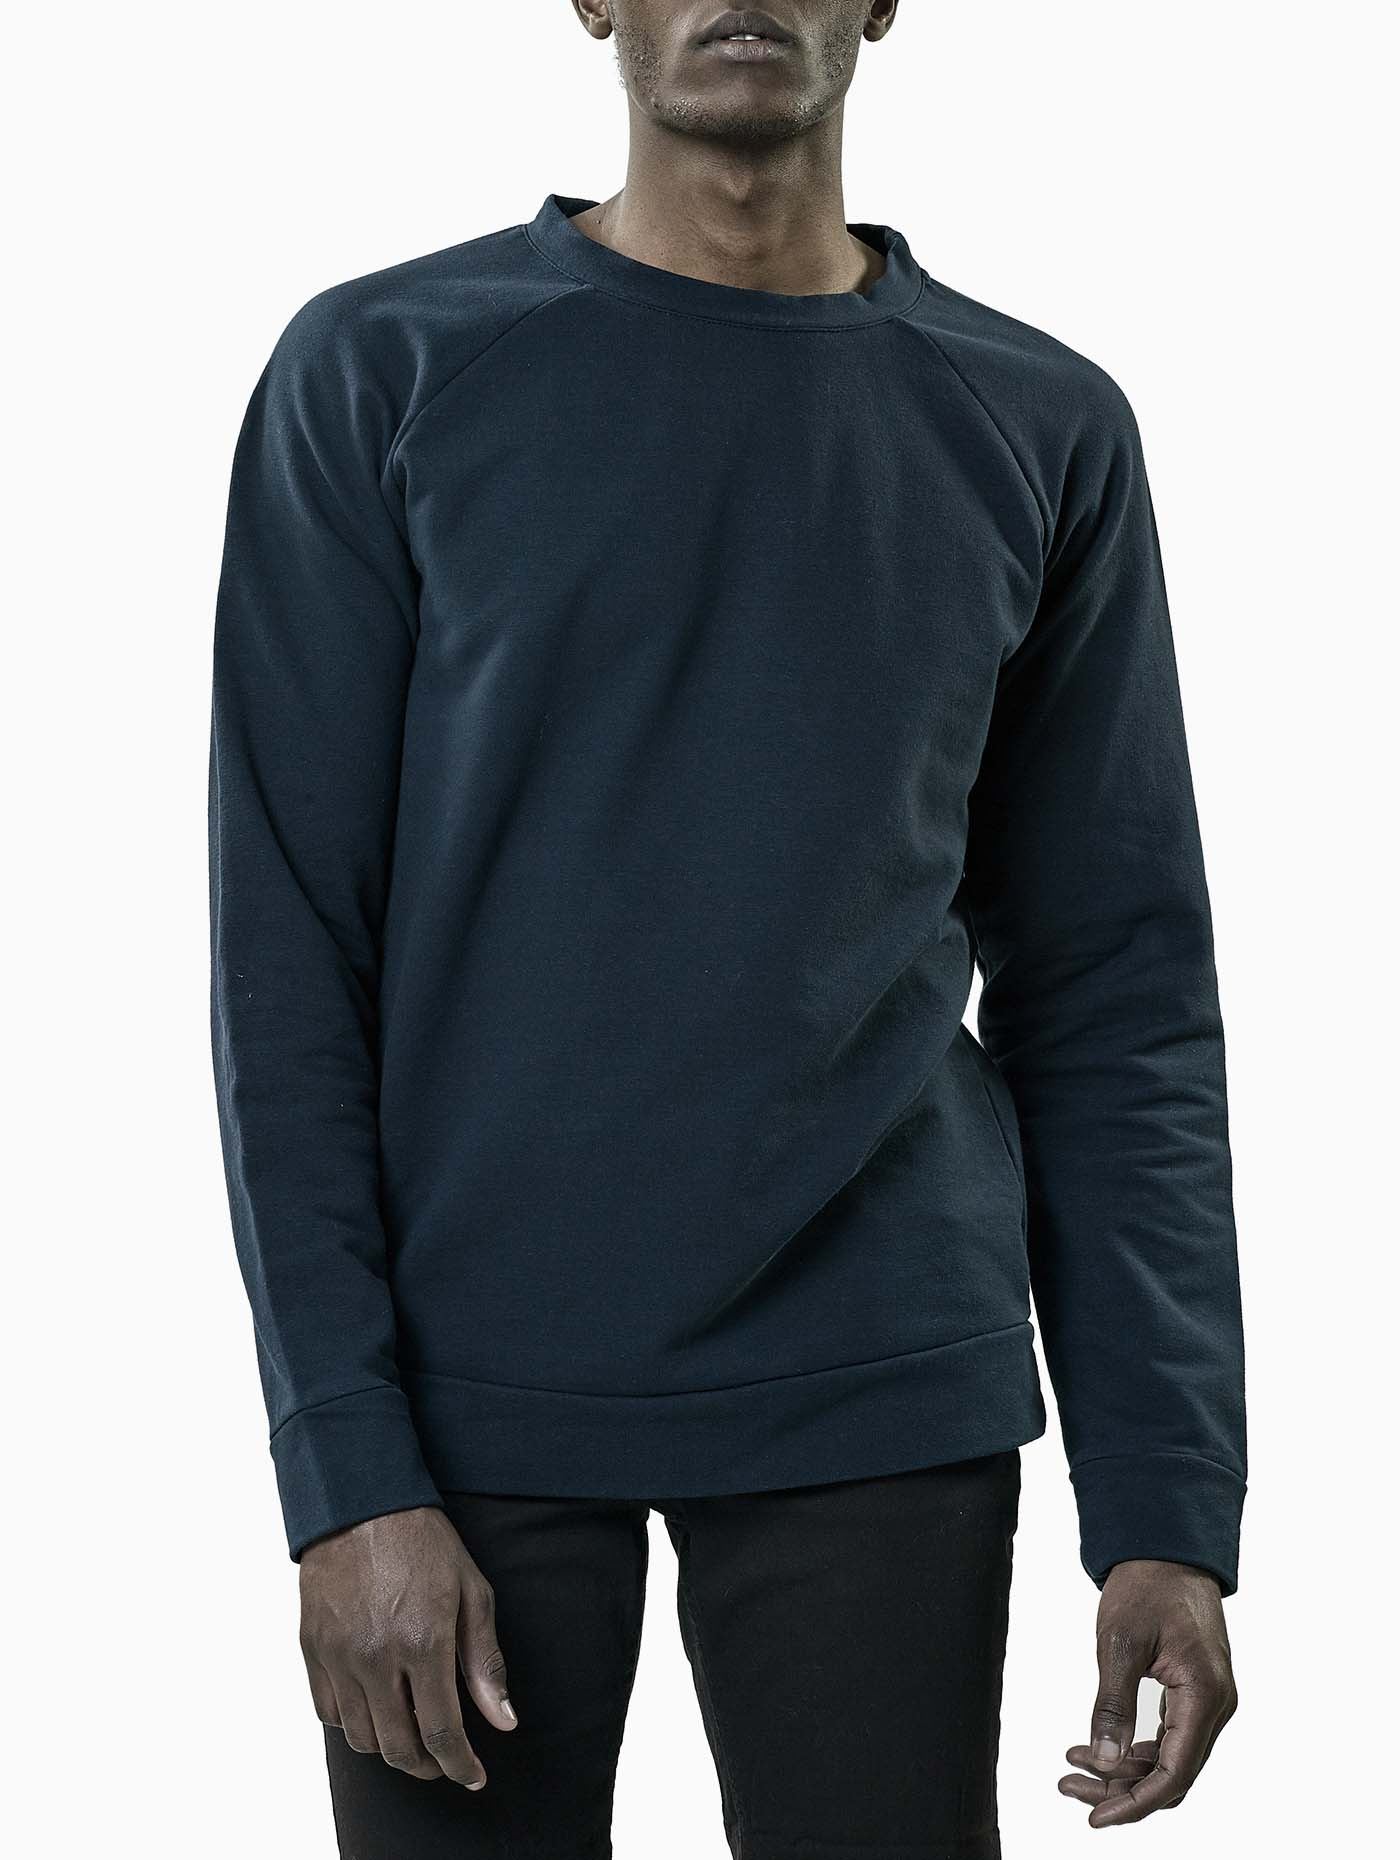 Reflect 3Huggers Sweatshirt